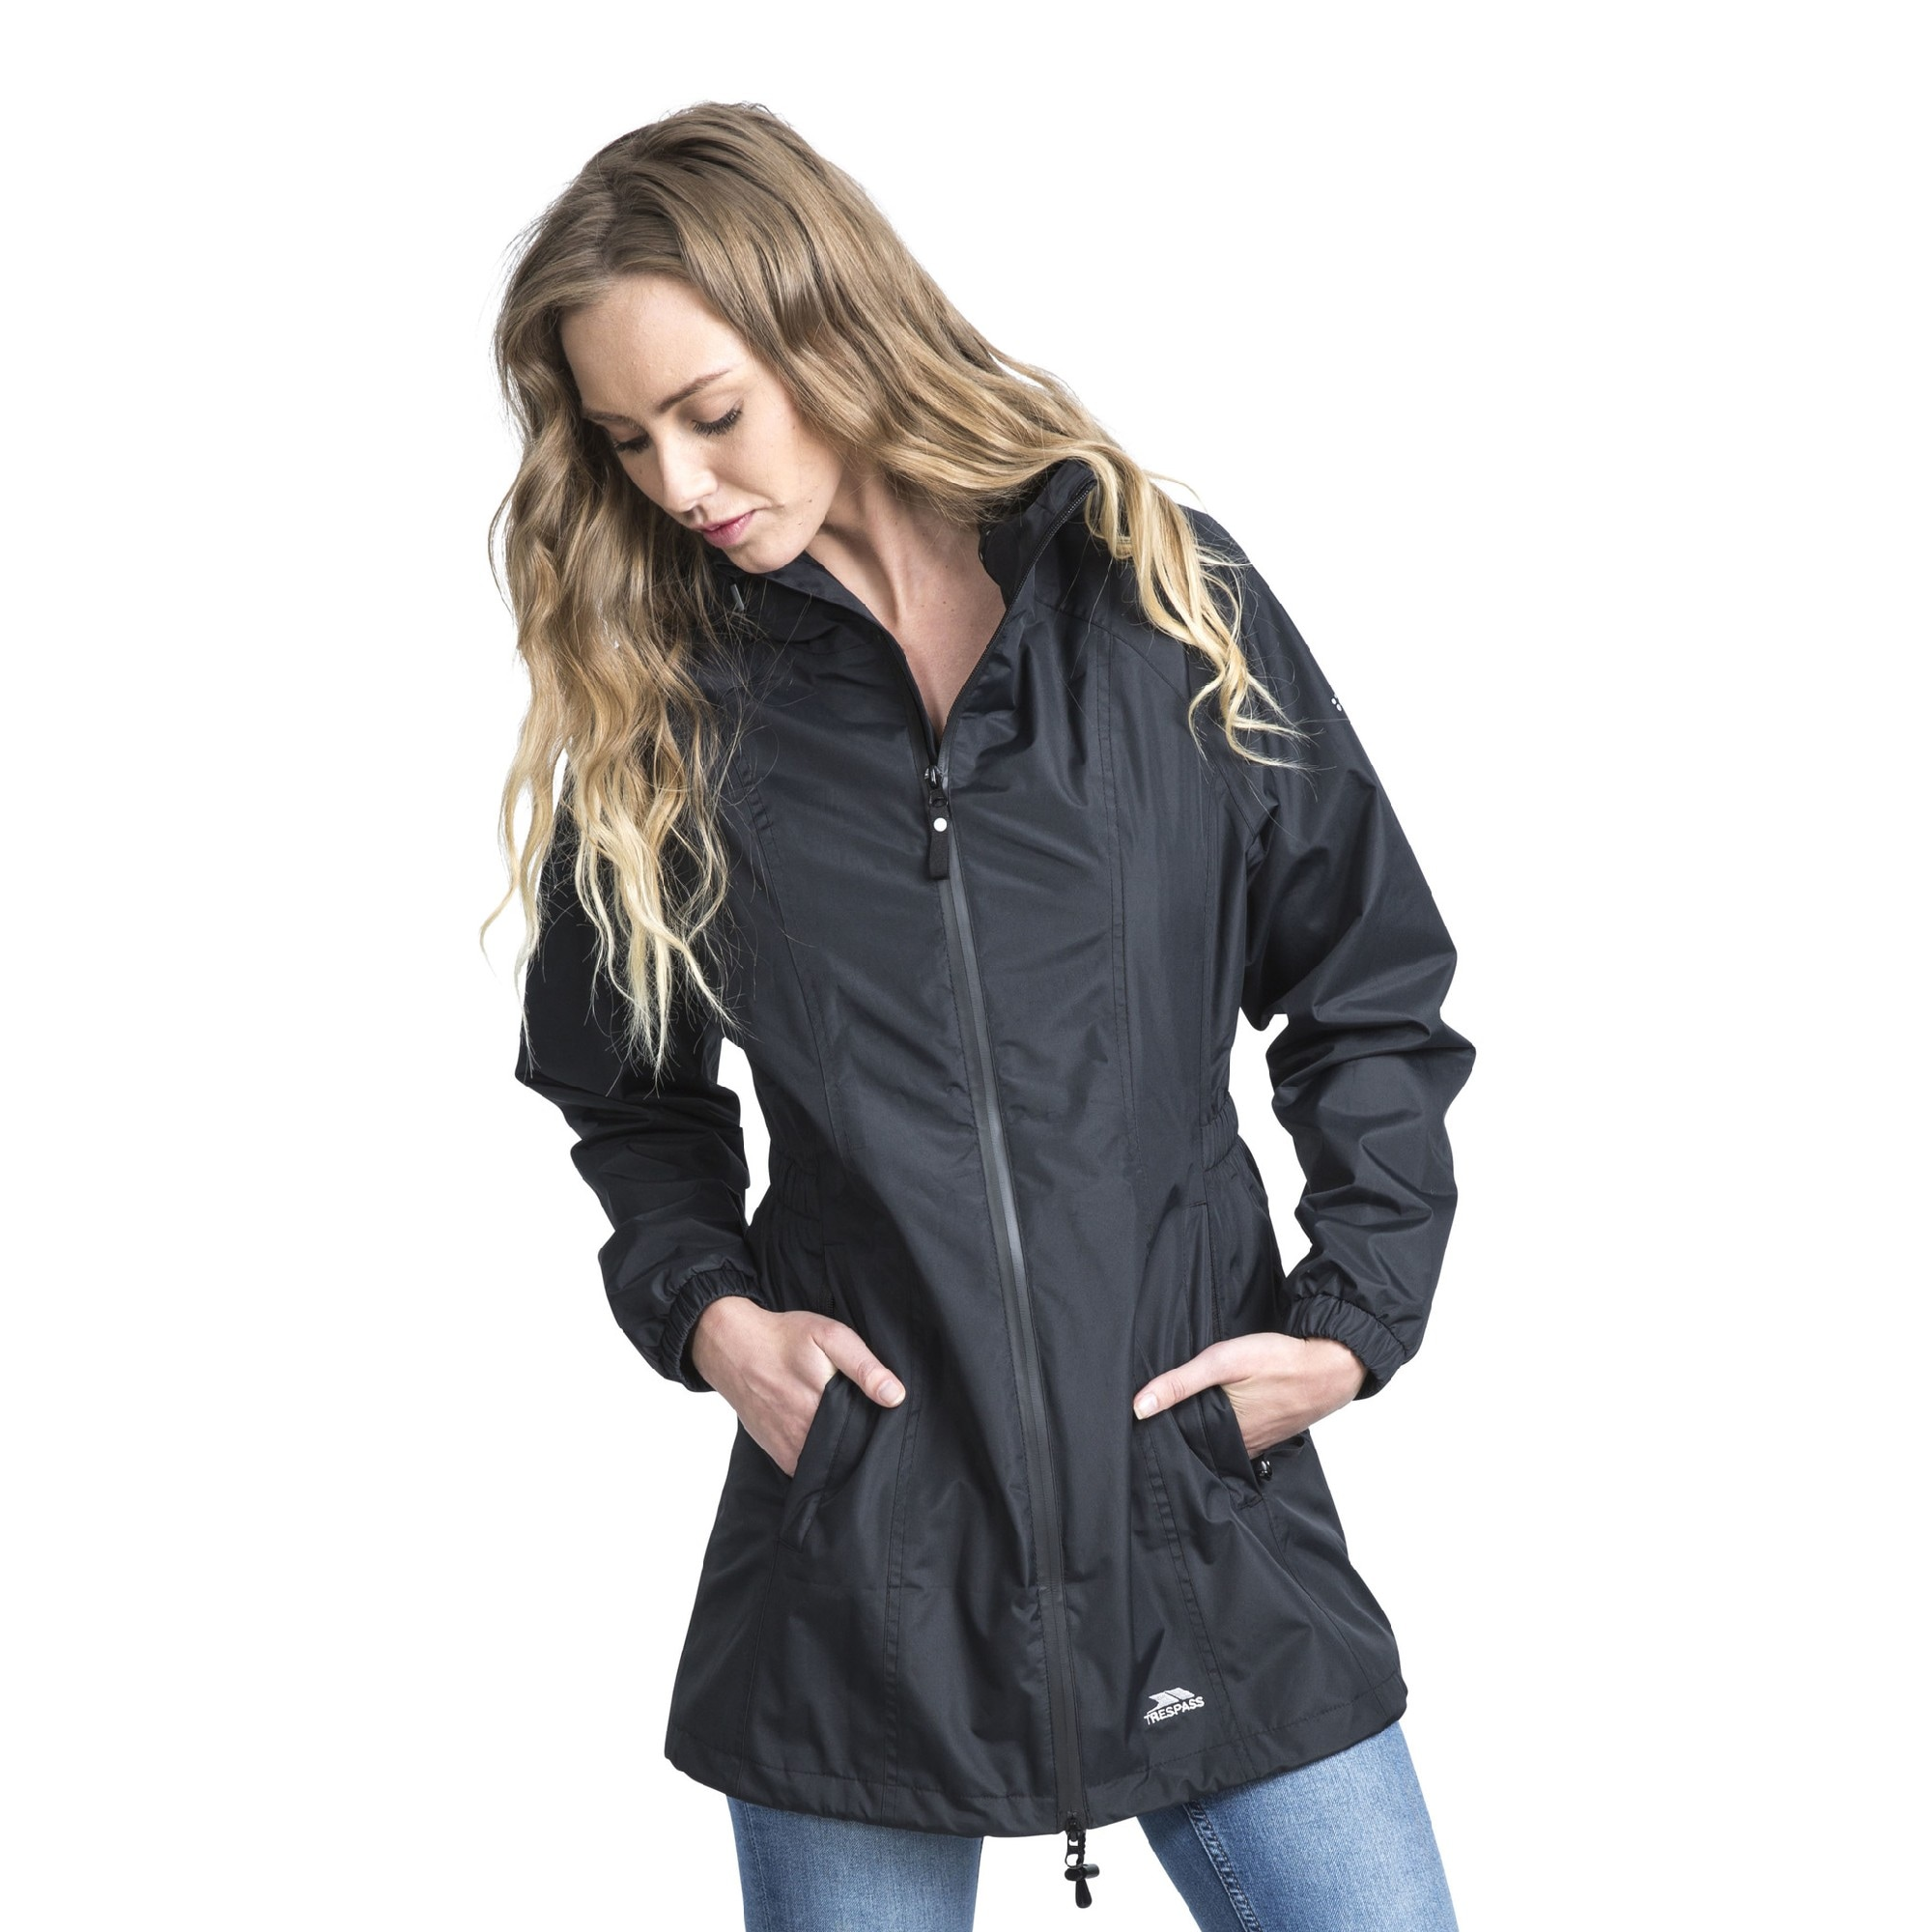 Trespass Softshelljacke Damen Shelljacke Daytrip mit Kapuze